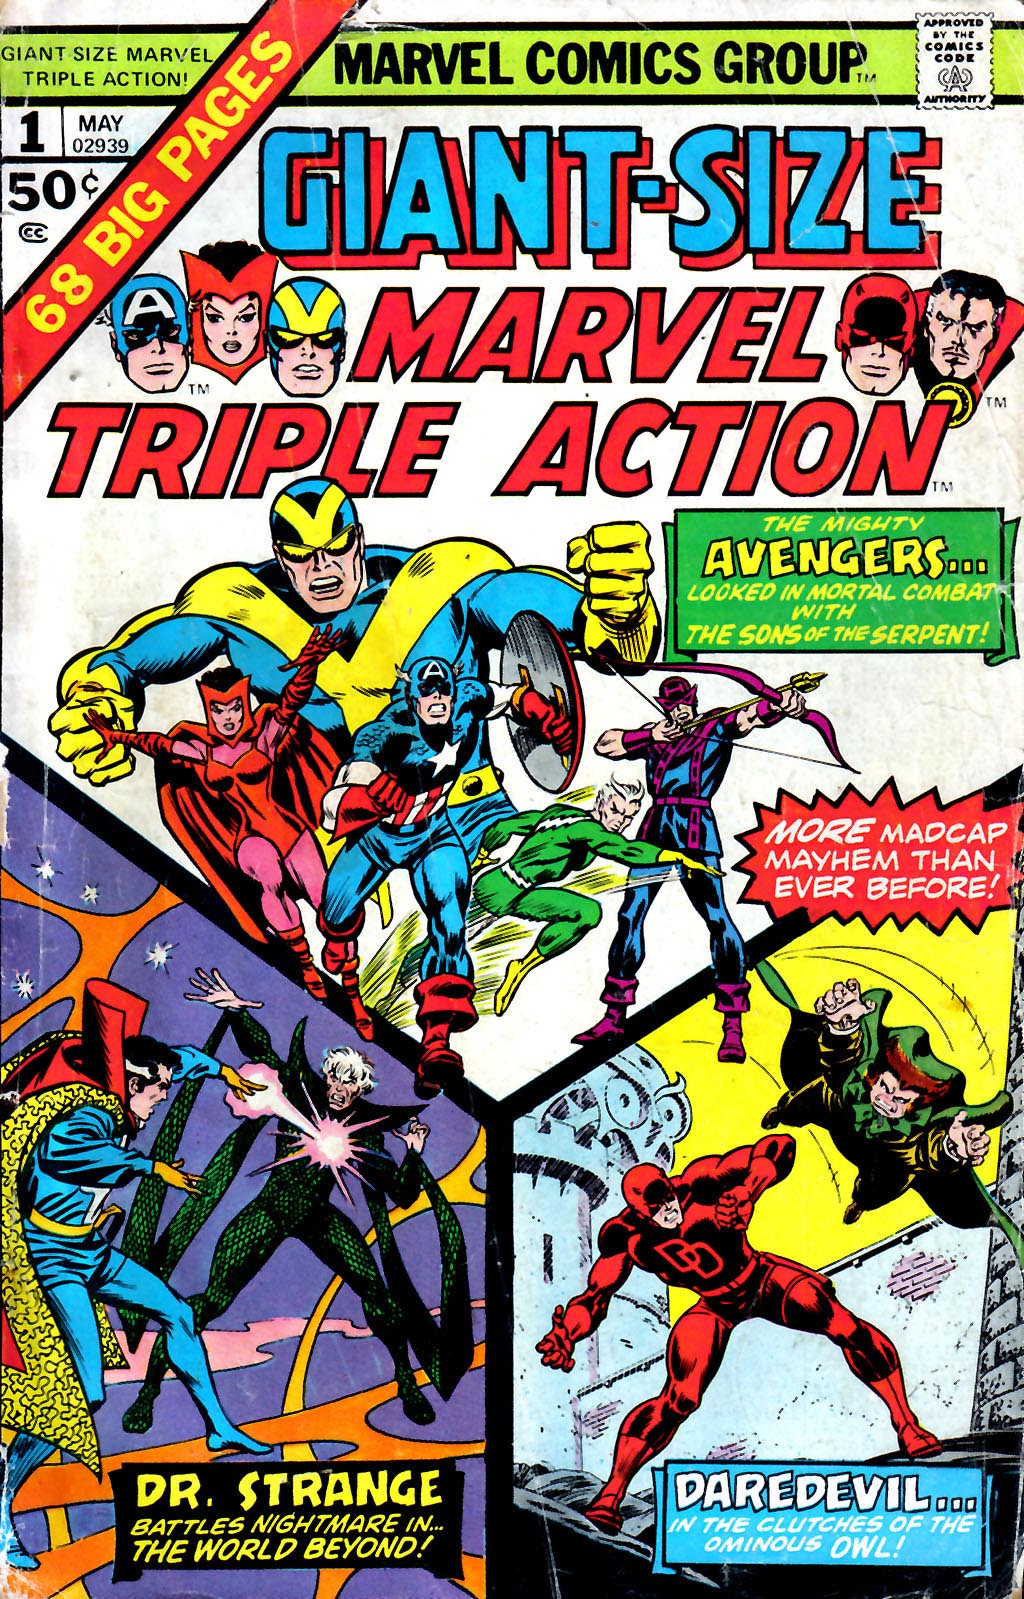 Giant-Size Marvel Triple Action 1 Page 1